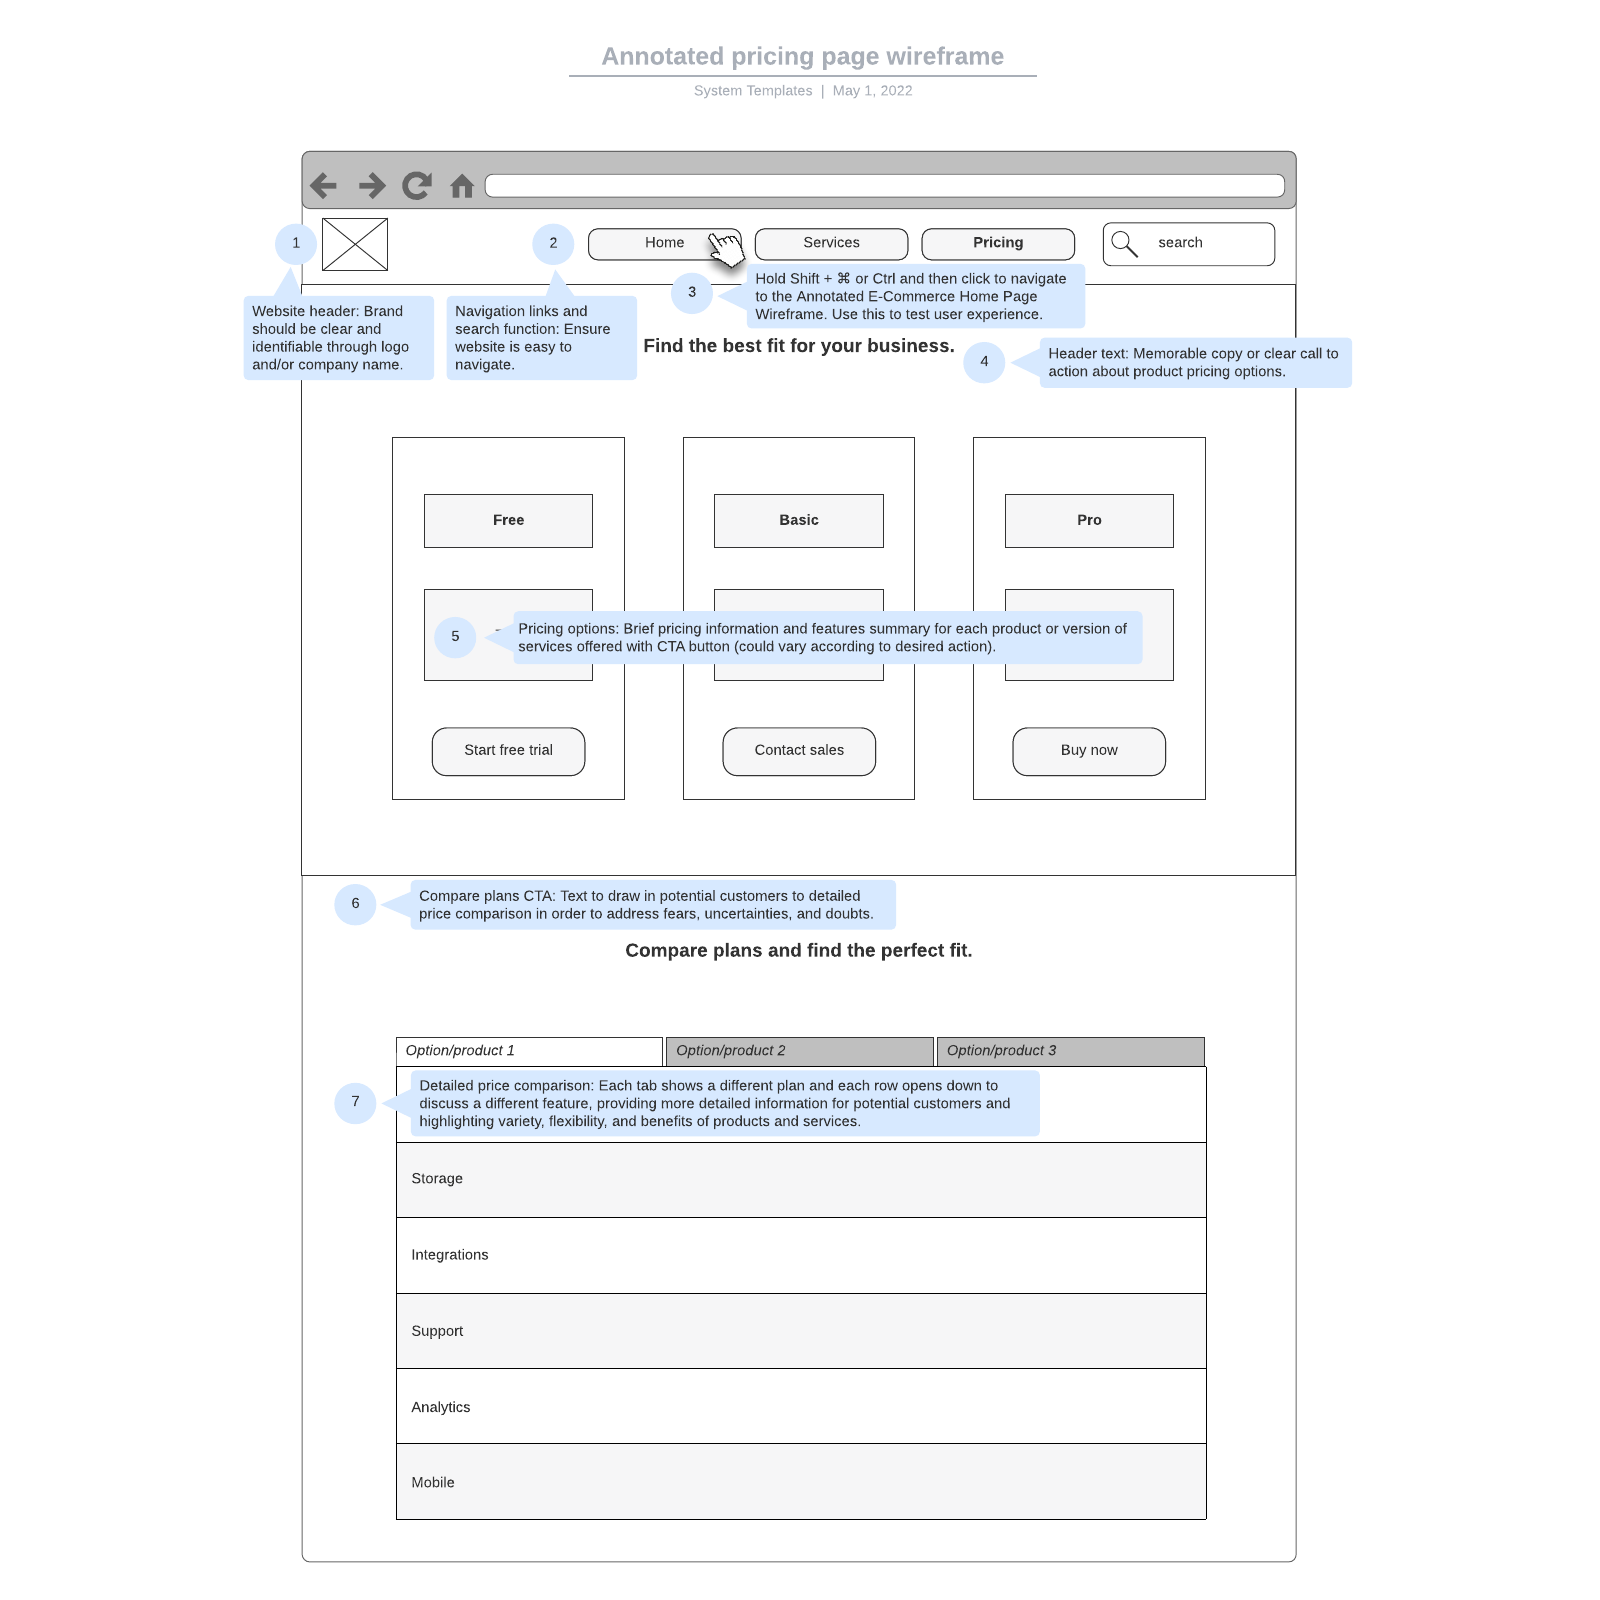 Annotated pricing page wireframe